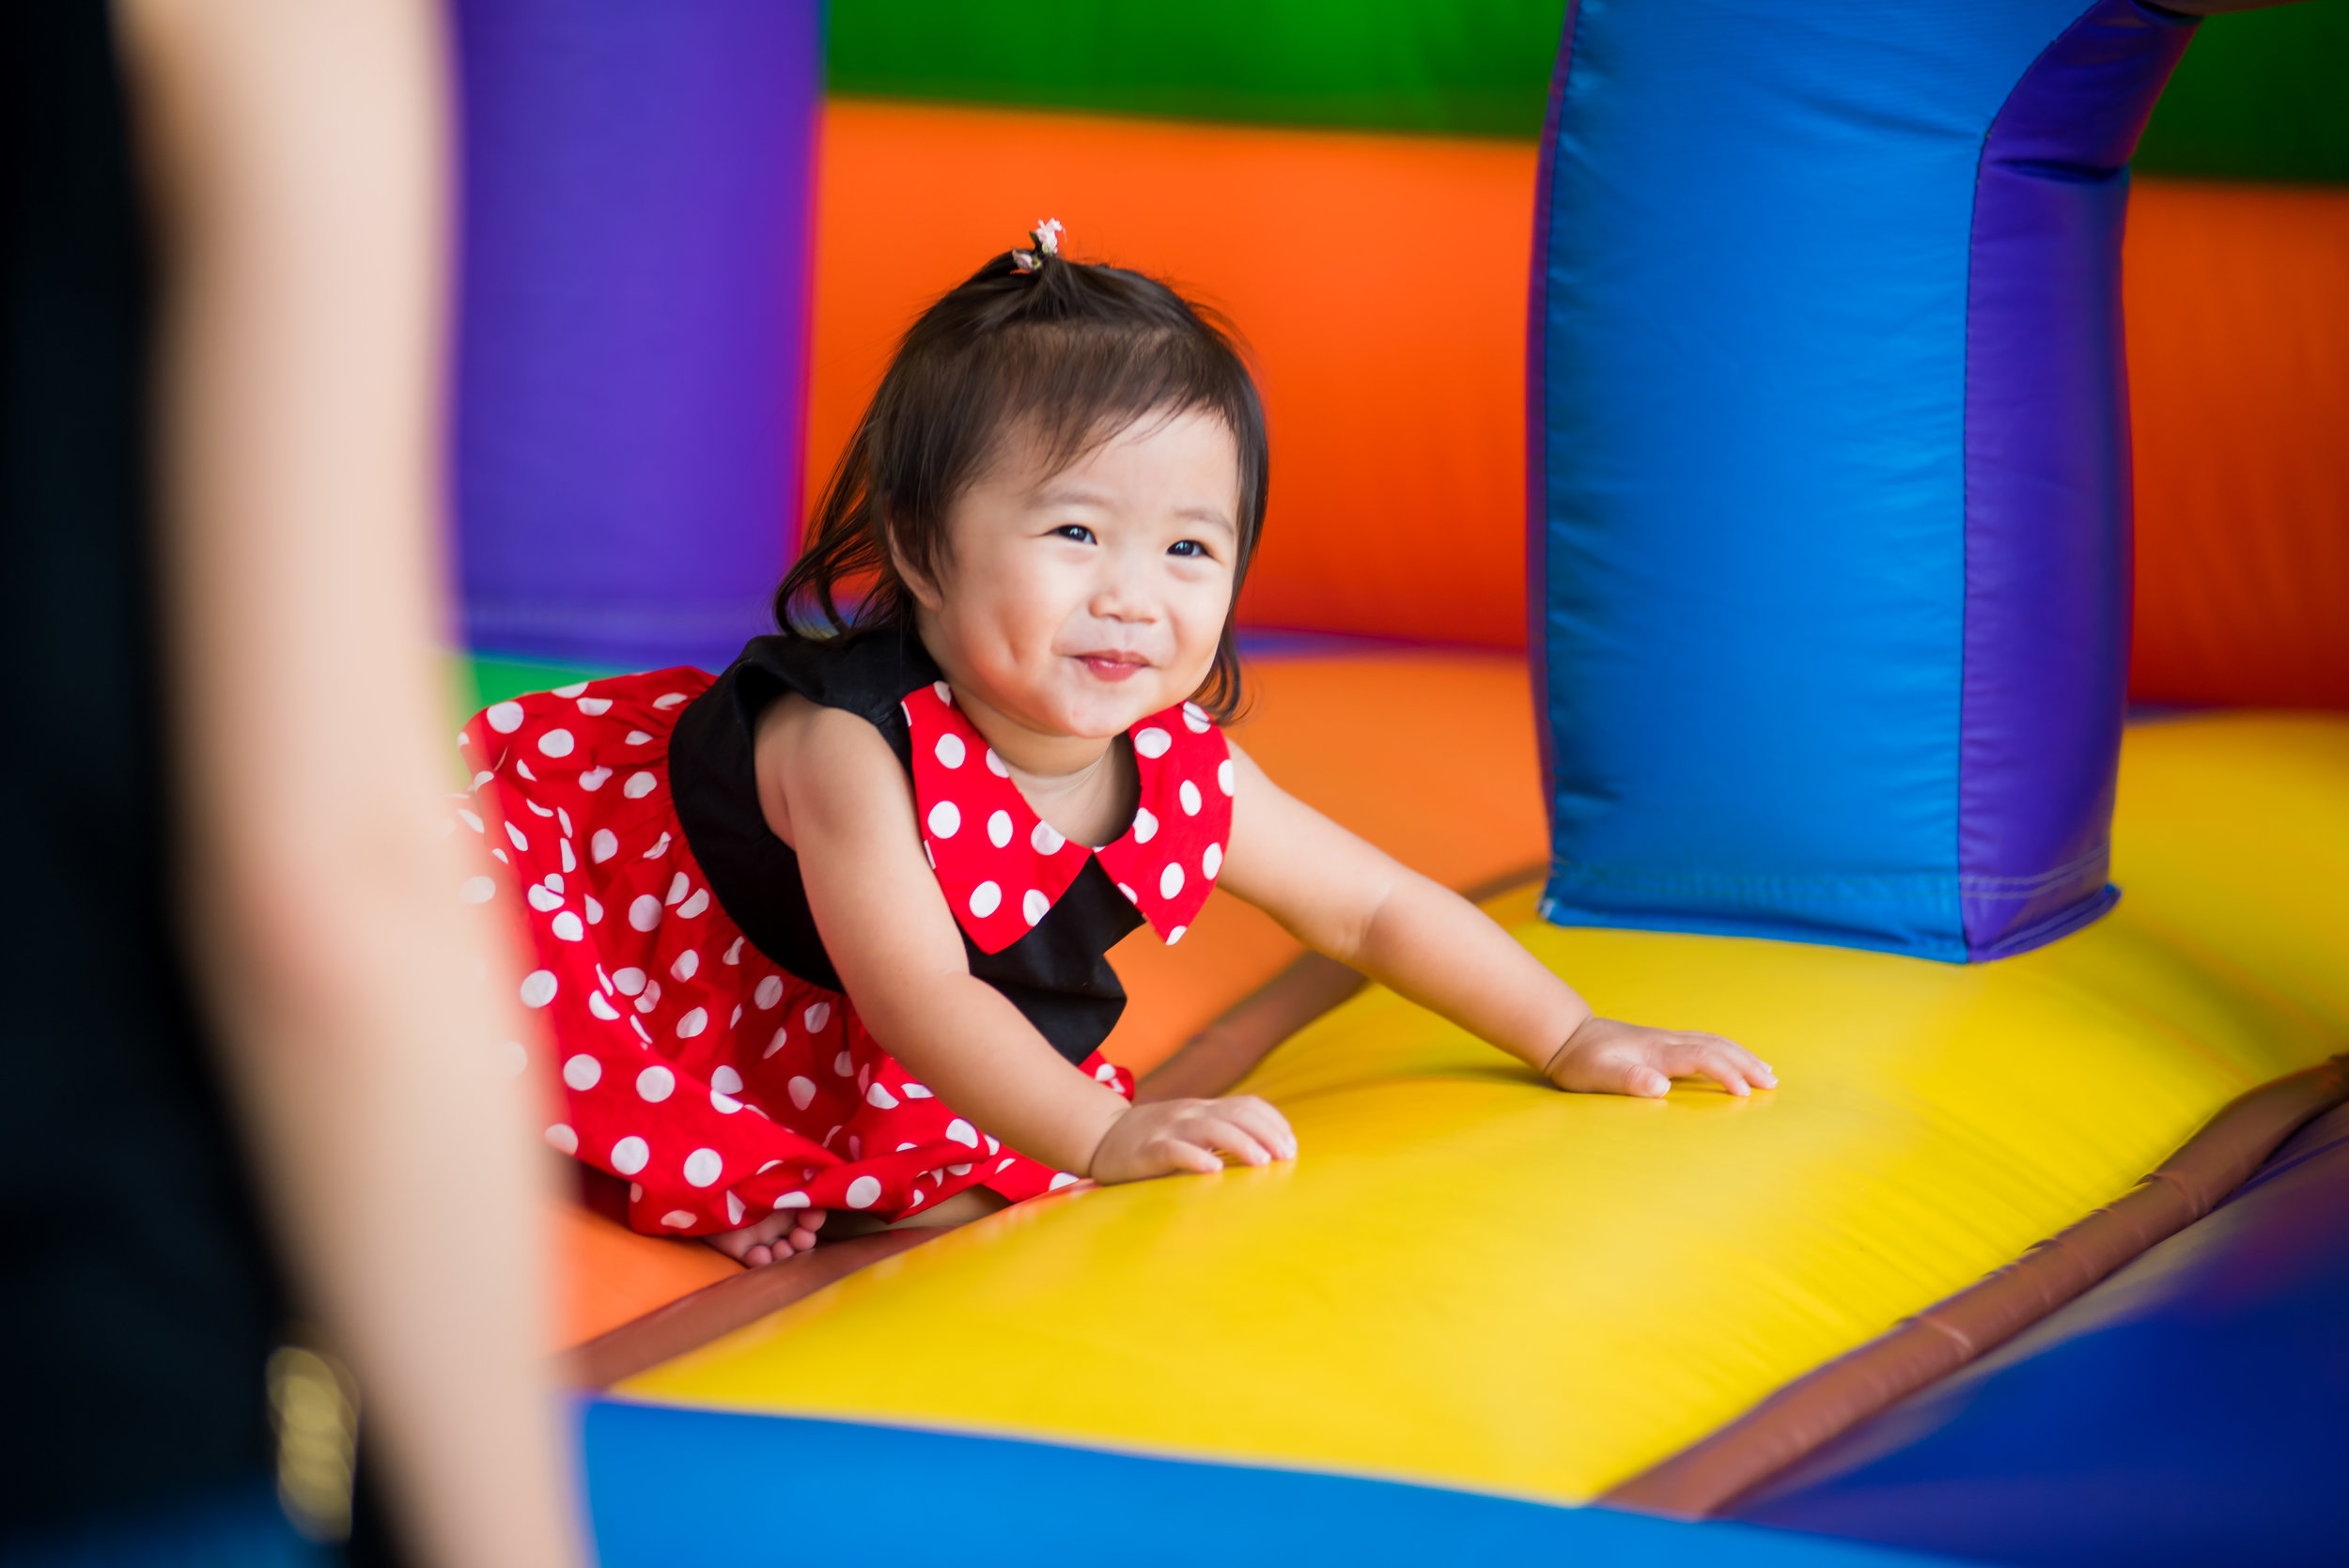 We've got our bouncy castle available from 3pm – 7pm on weekdays & 9am – 8pm on weekends (weather permitting).